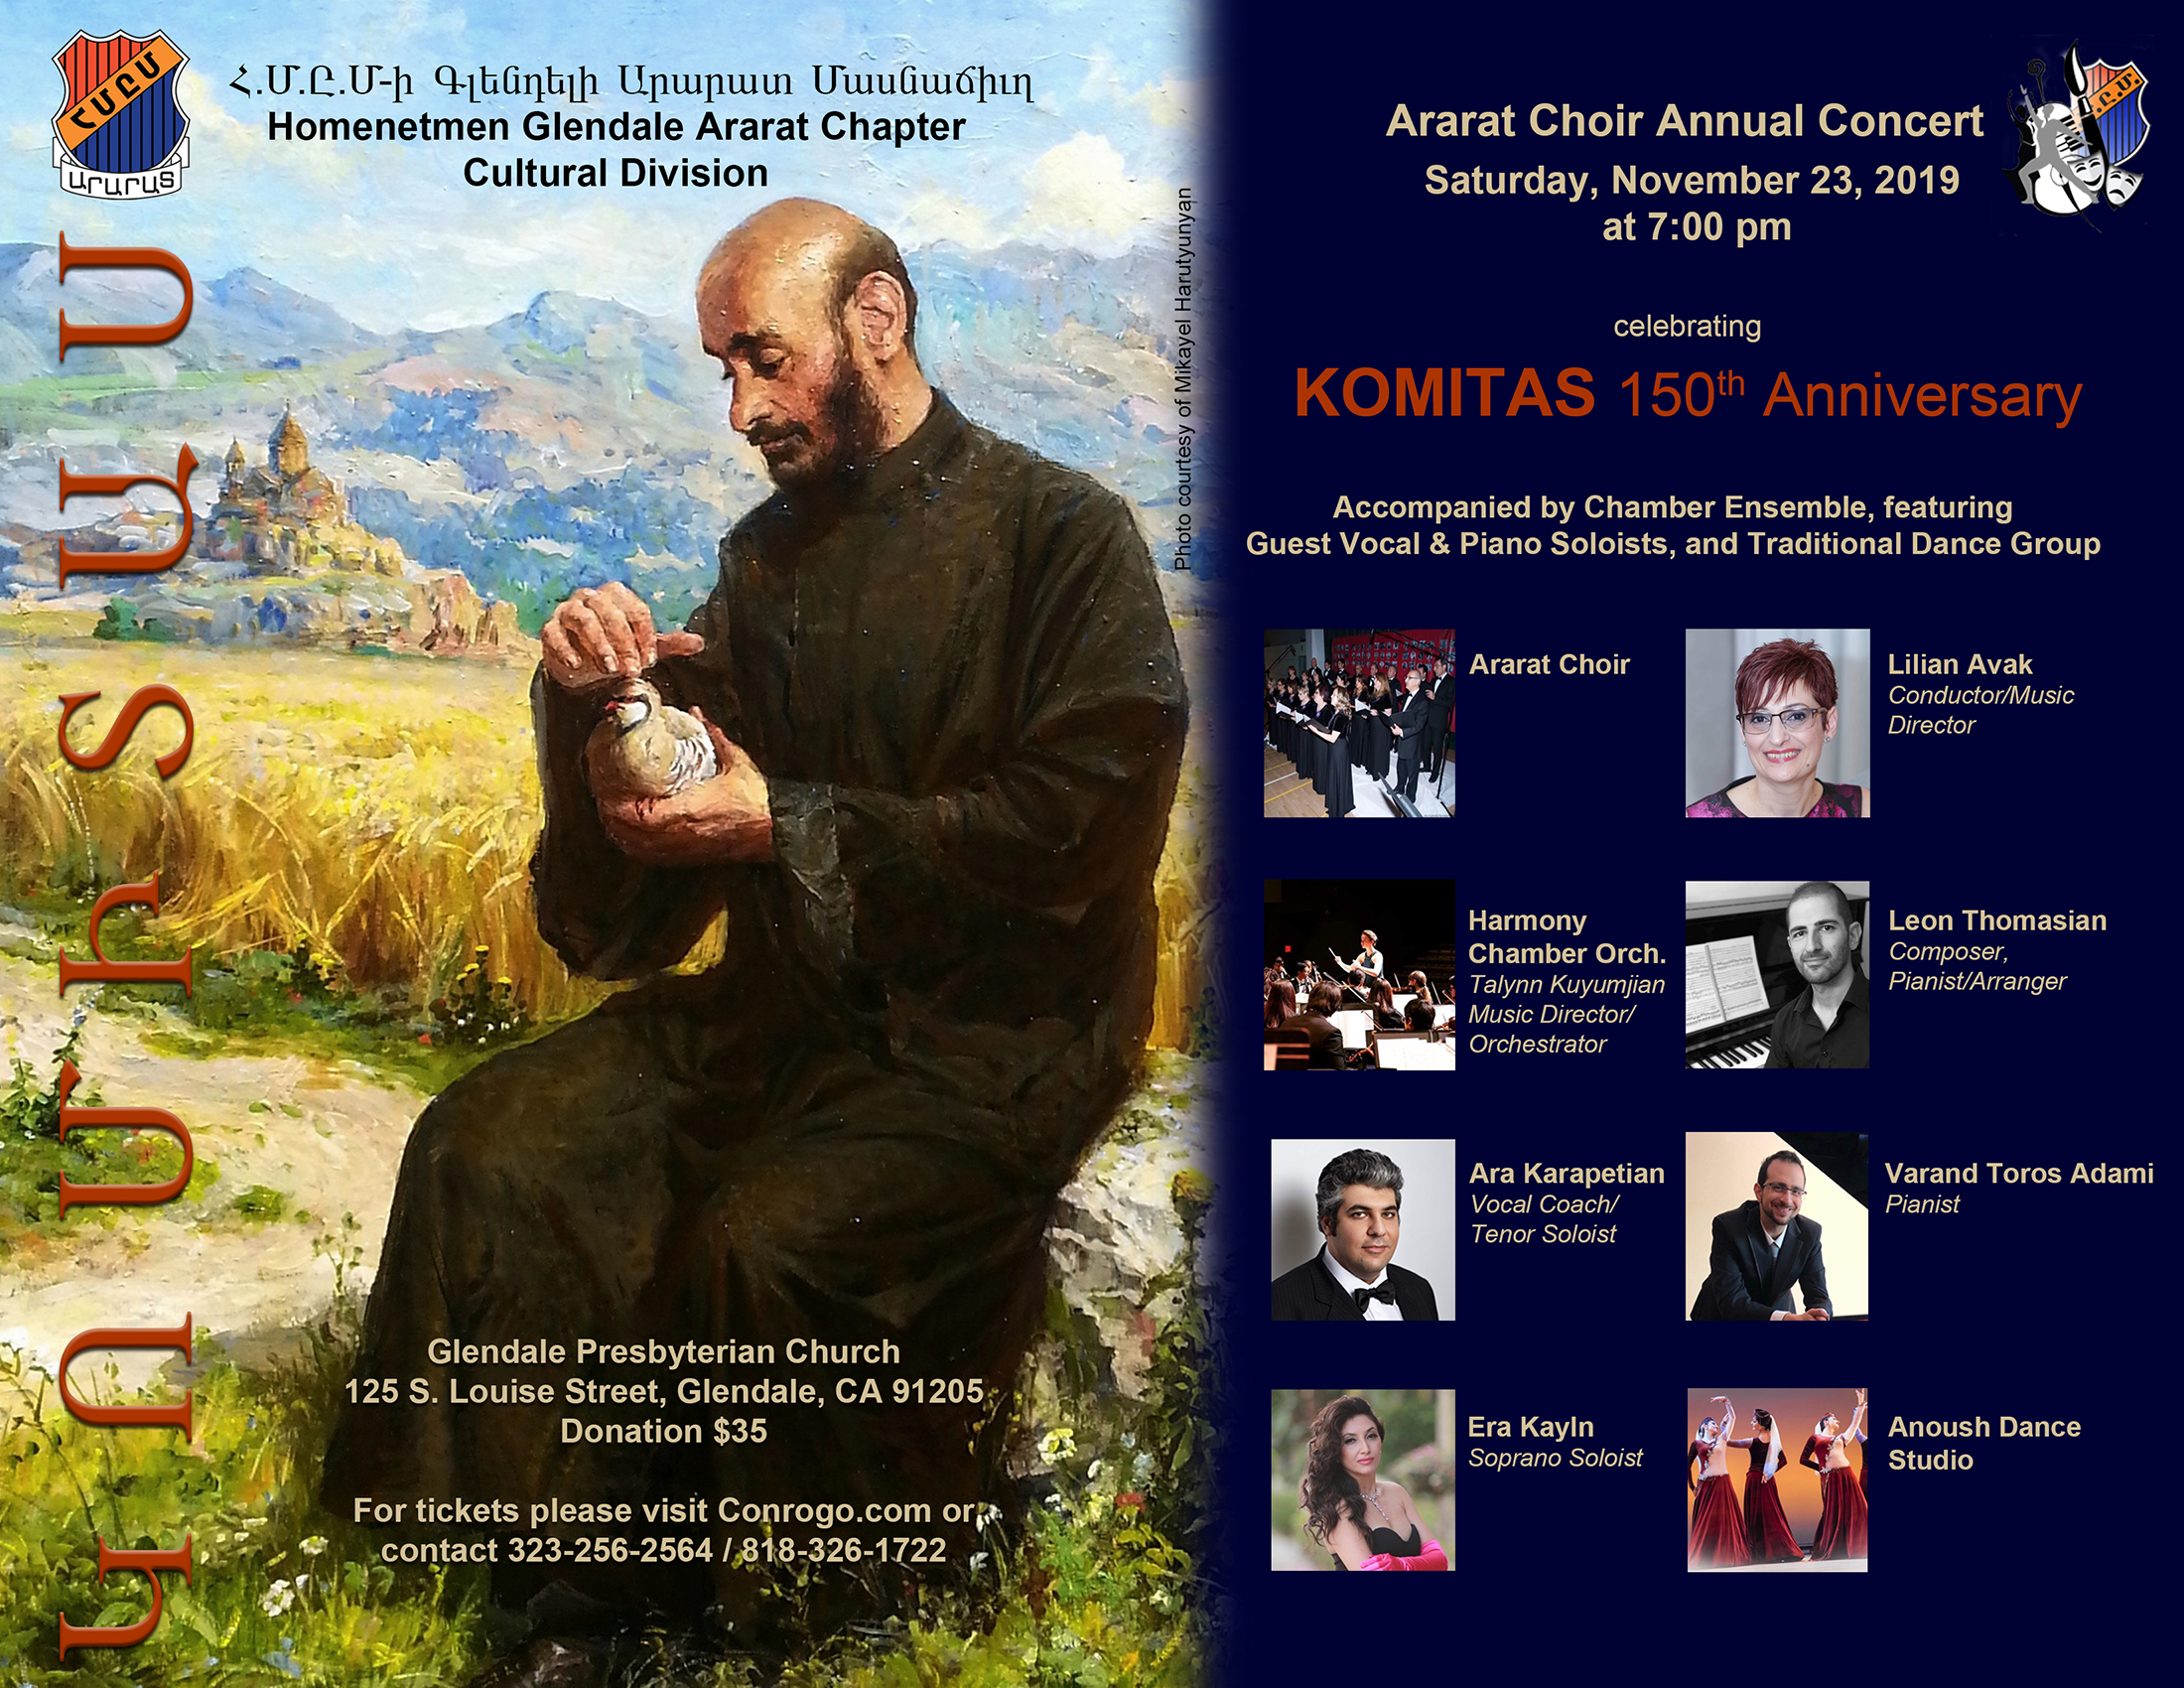 Ararat Choir Annual Concert